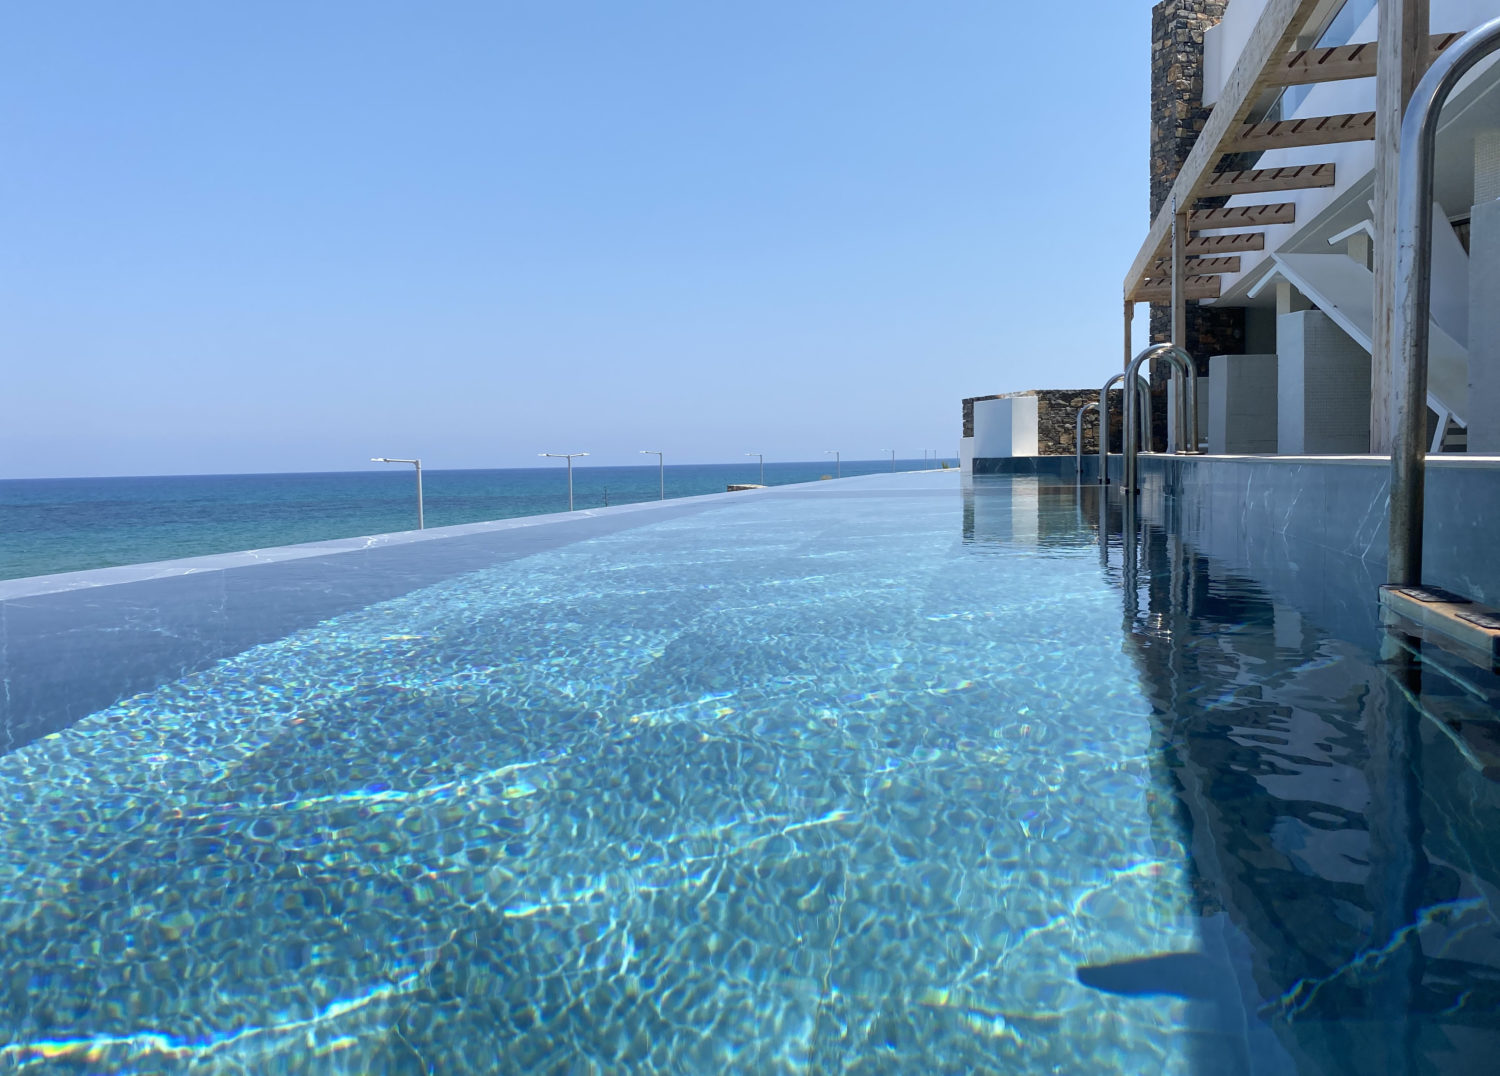 CRETE HOTEL ROOM WITH INFINITY POOL1